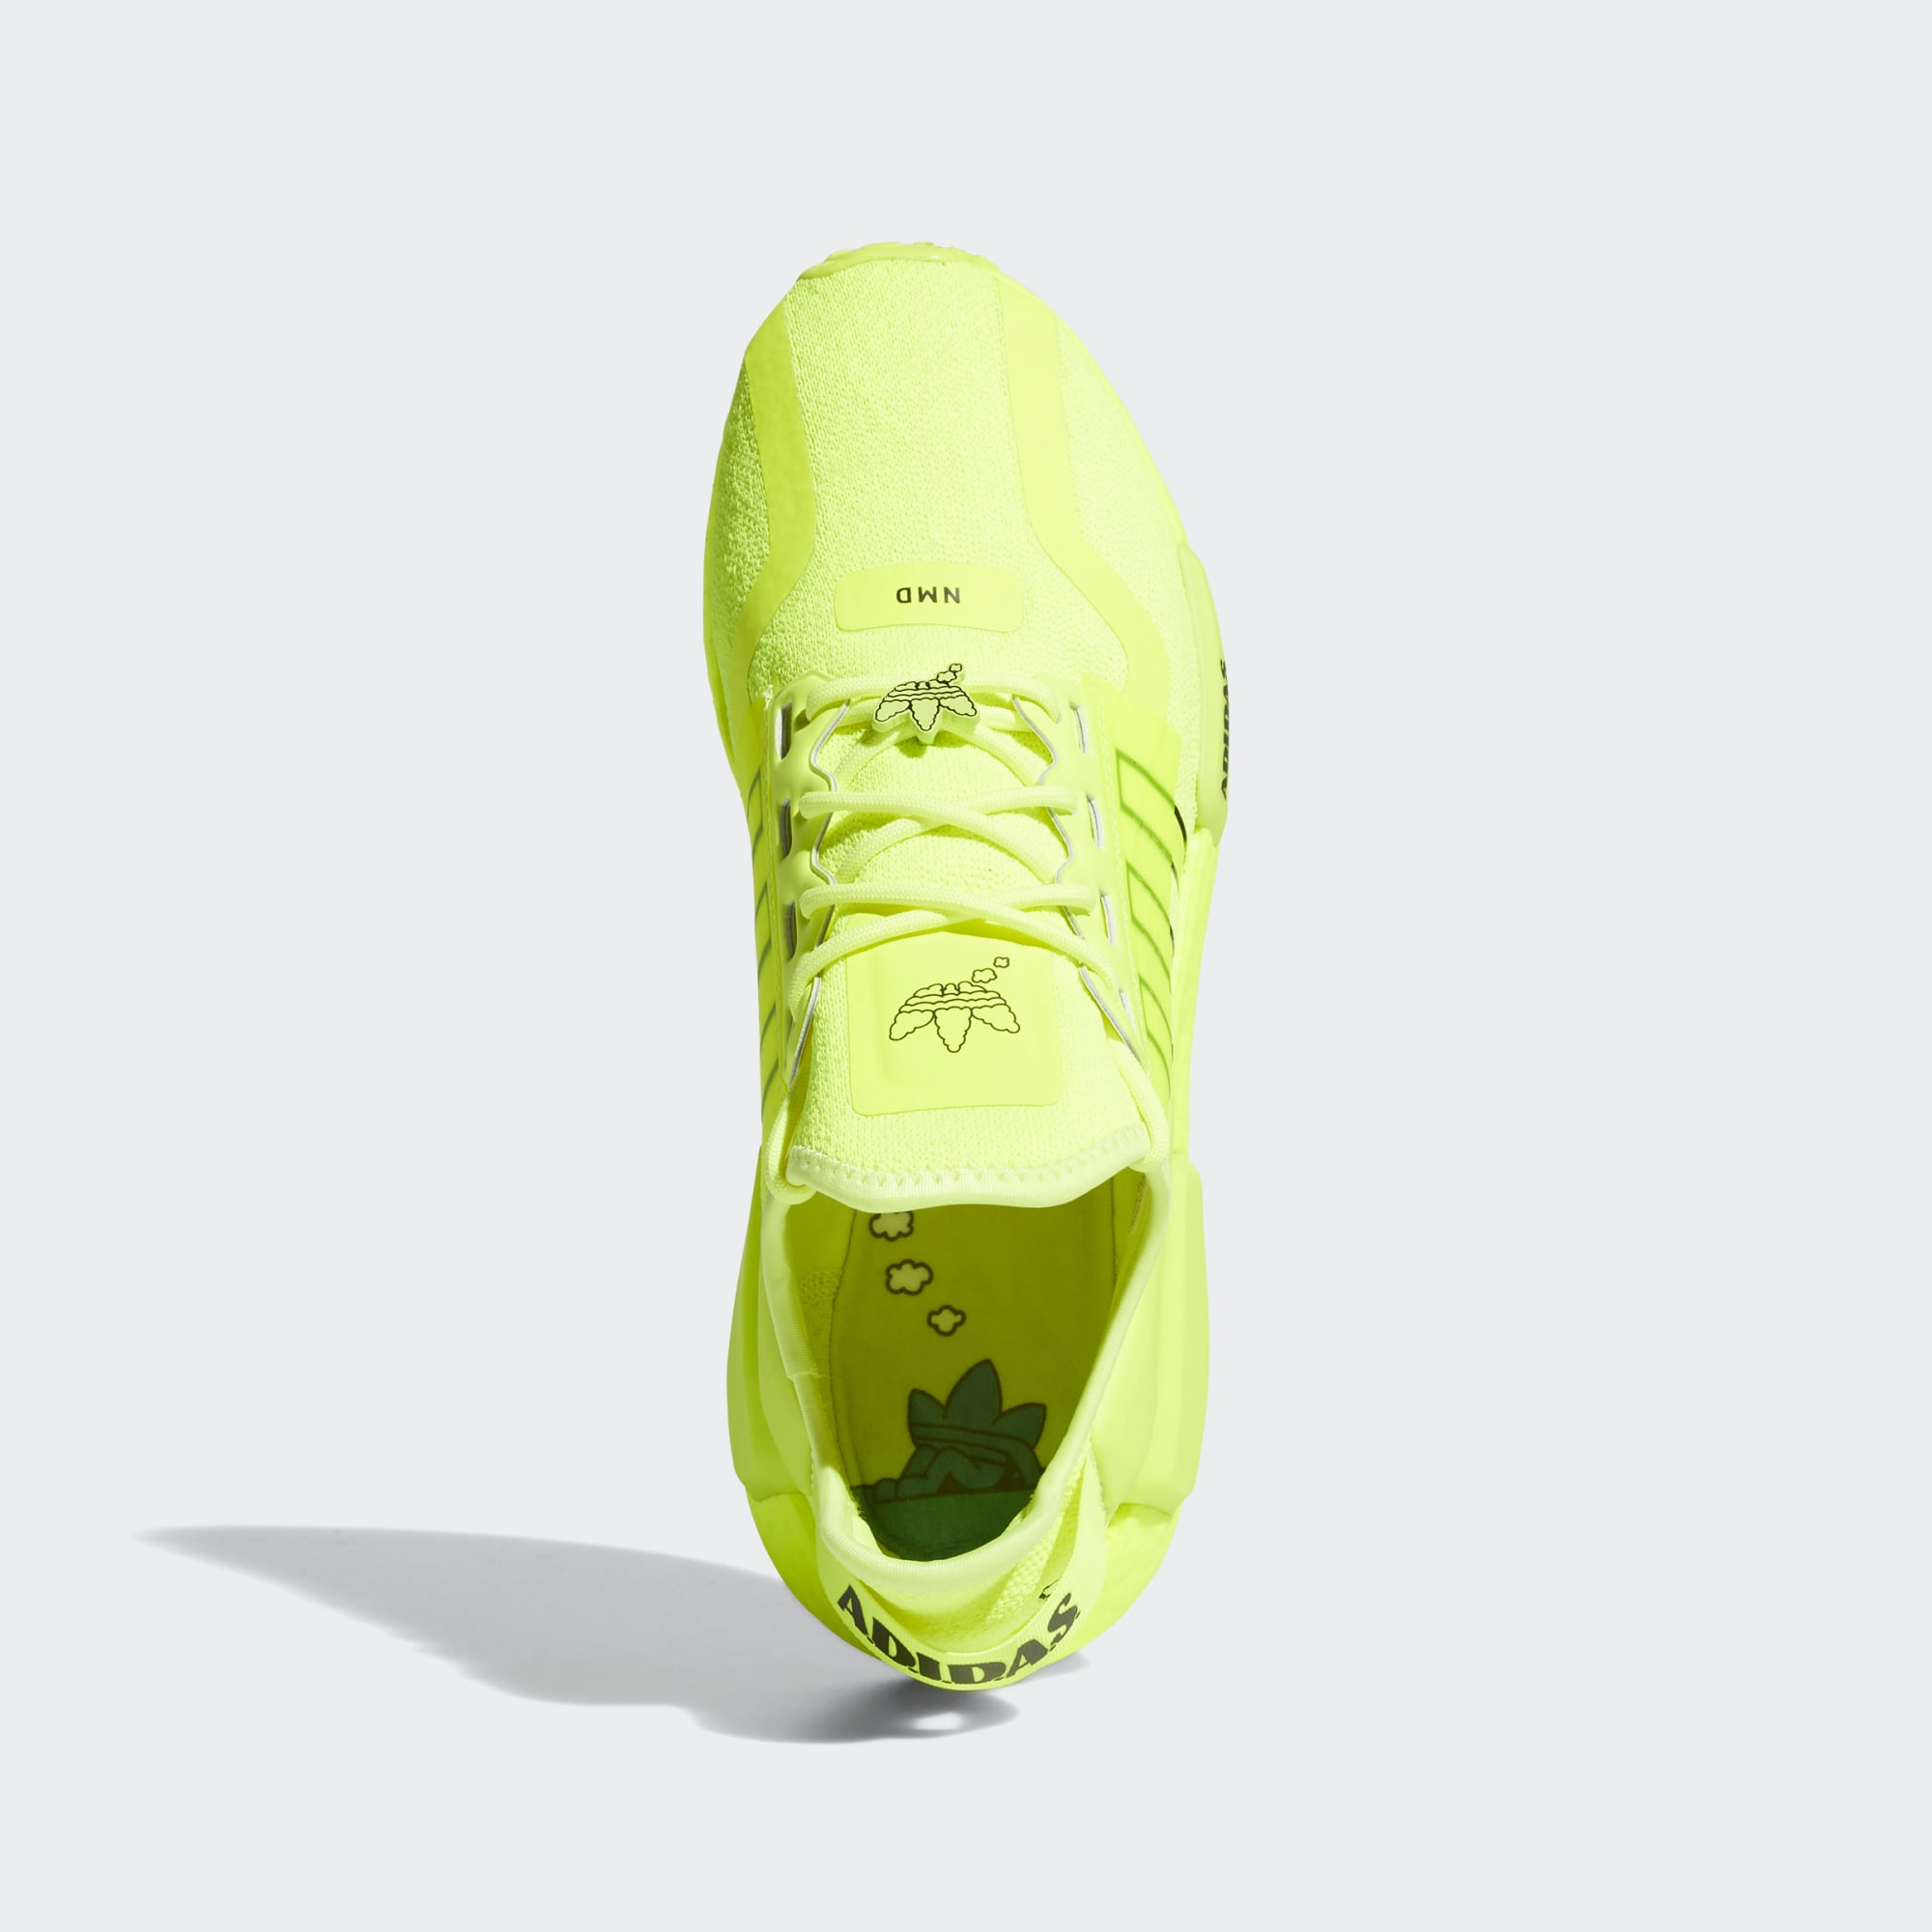 NMD_R1_V2_Shoes_Yellow_H02654_02_standard_hover.jpg